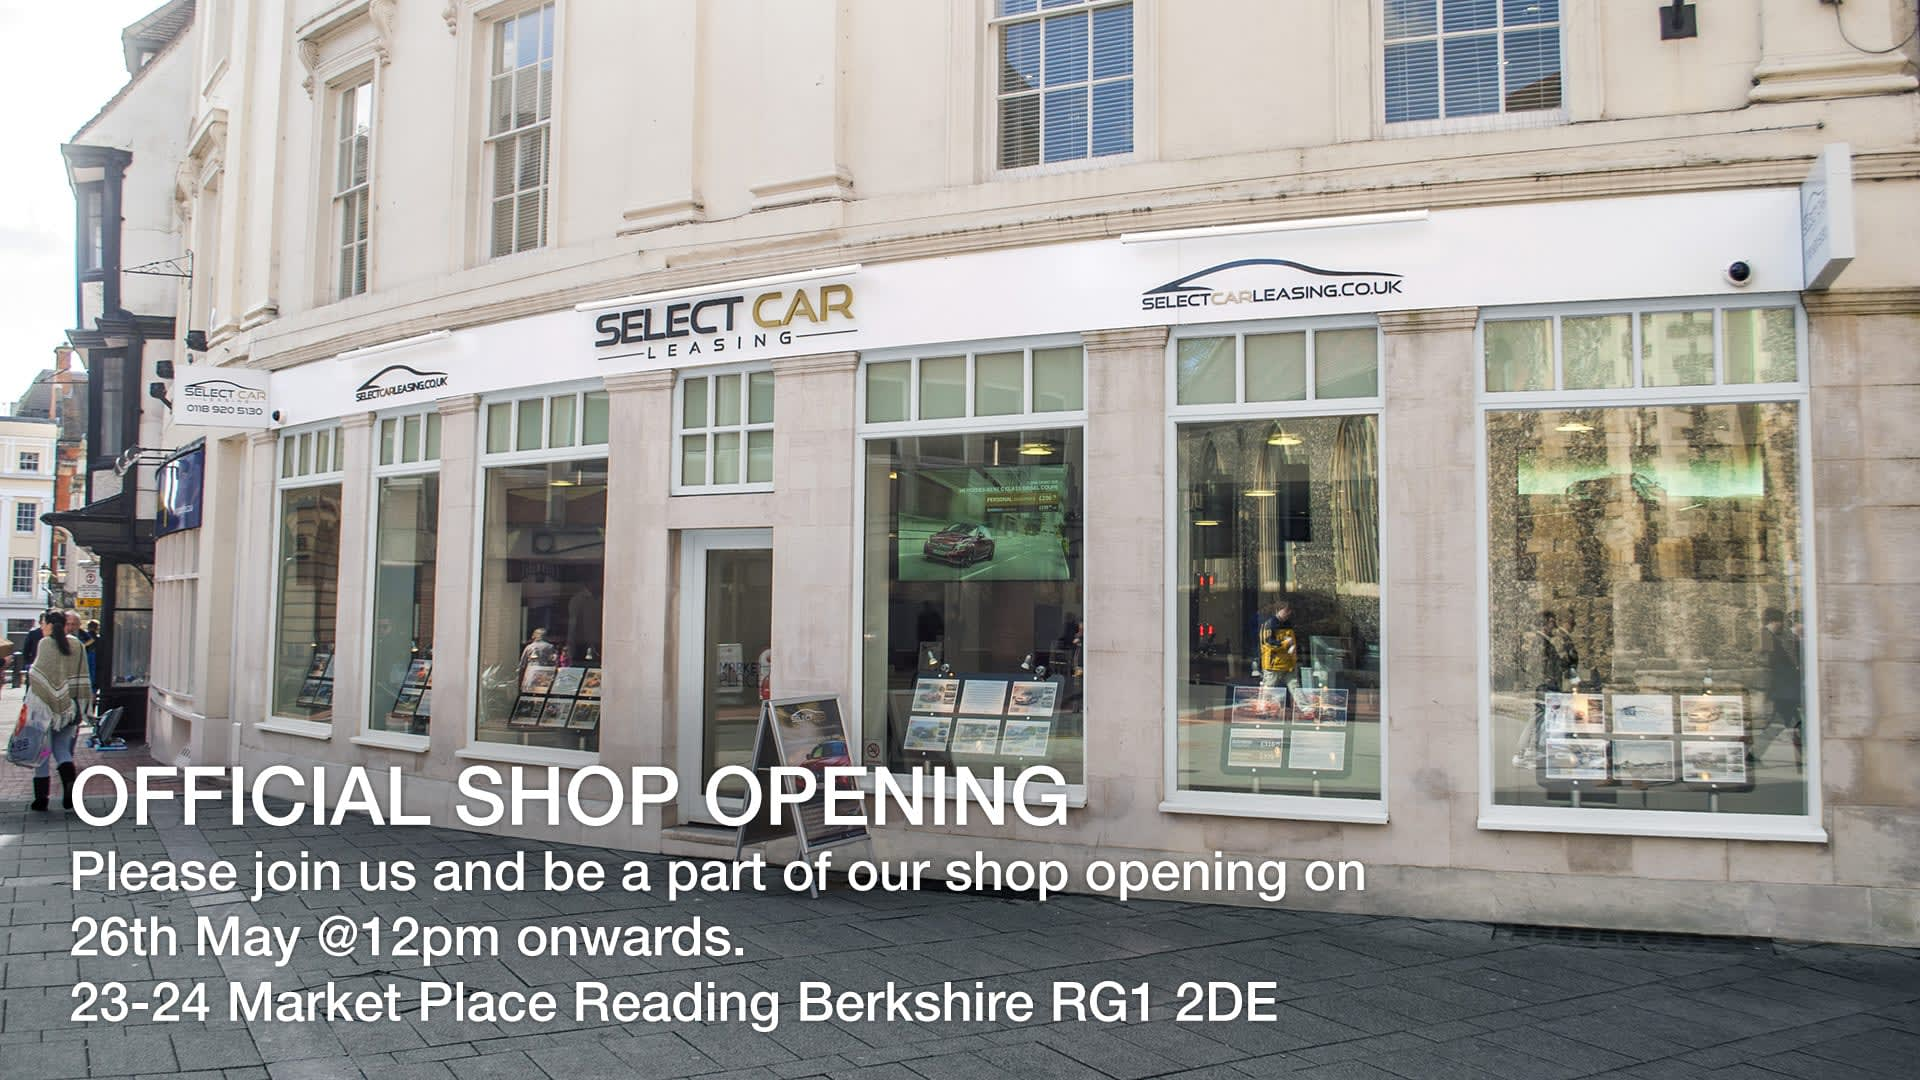 Official shop opening